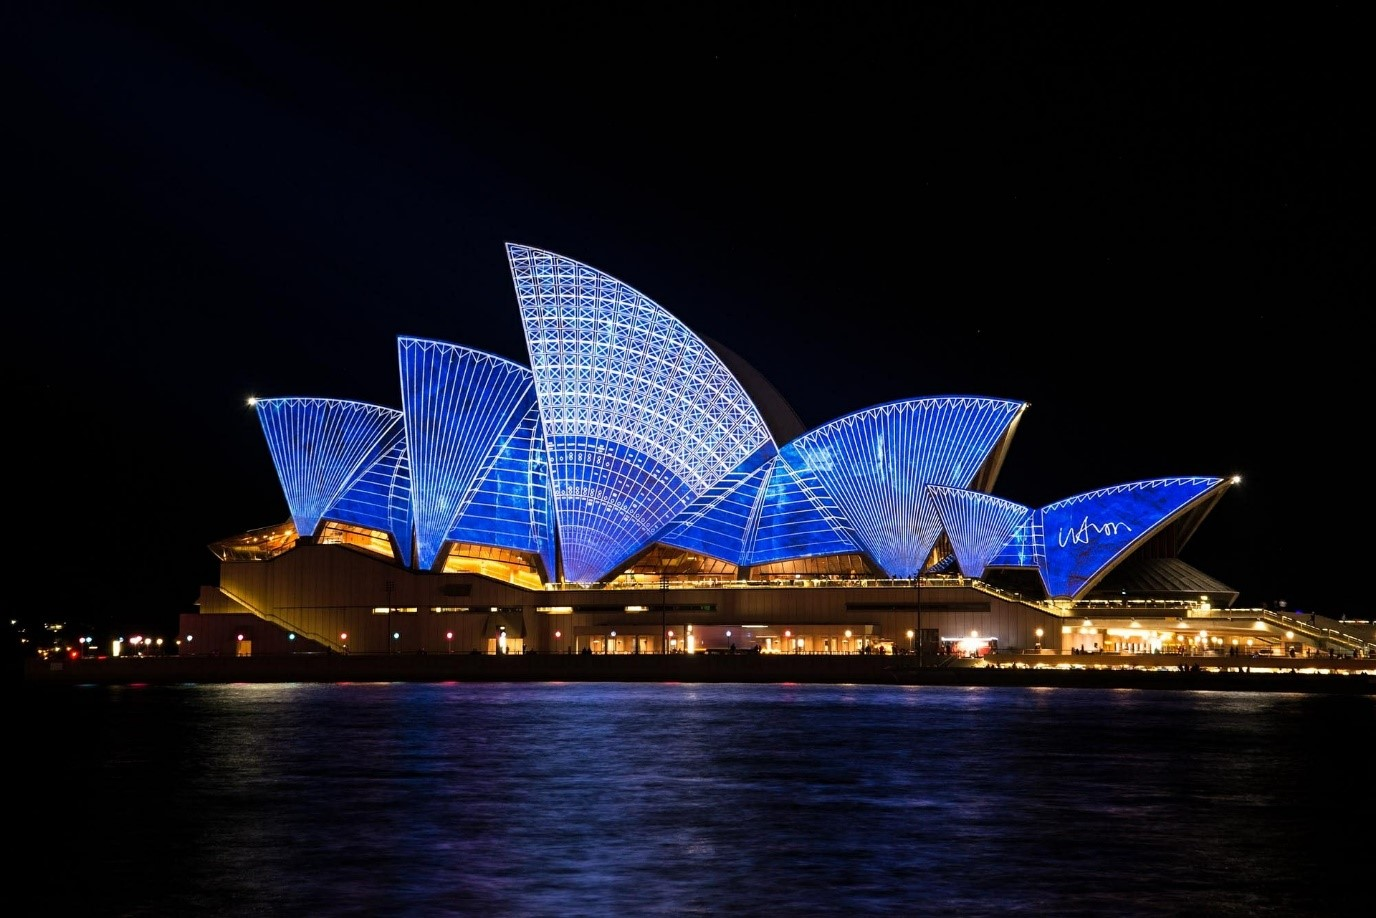 A panoramic view of Sydney Opera House lit up in patterned blue lights